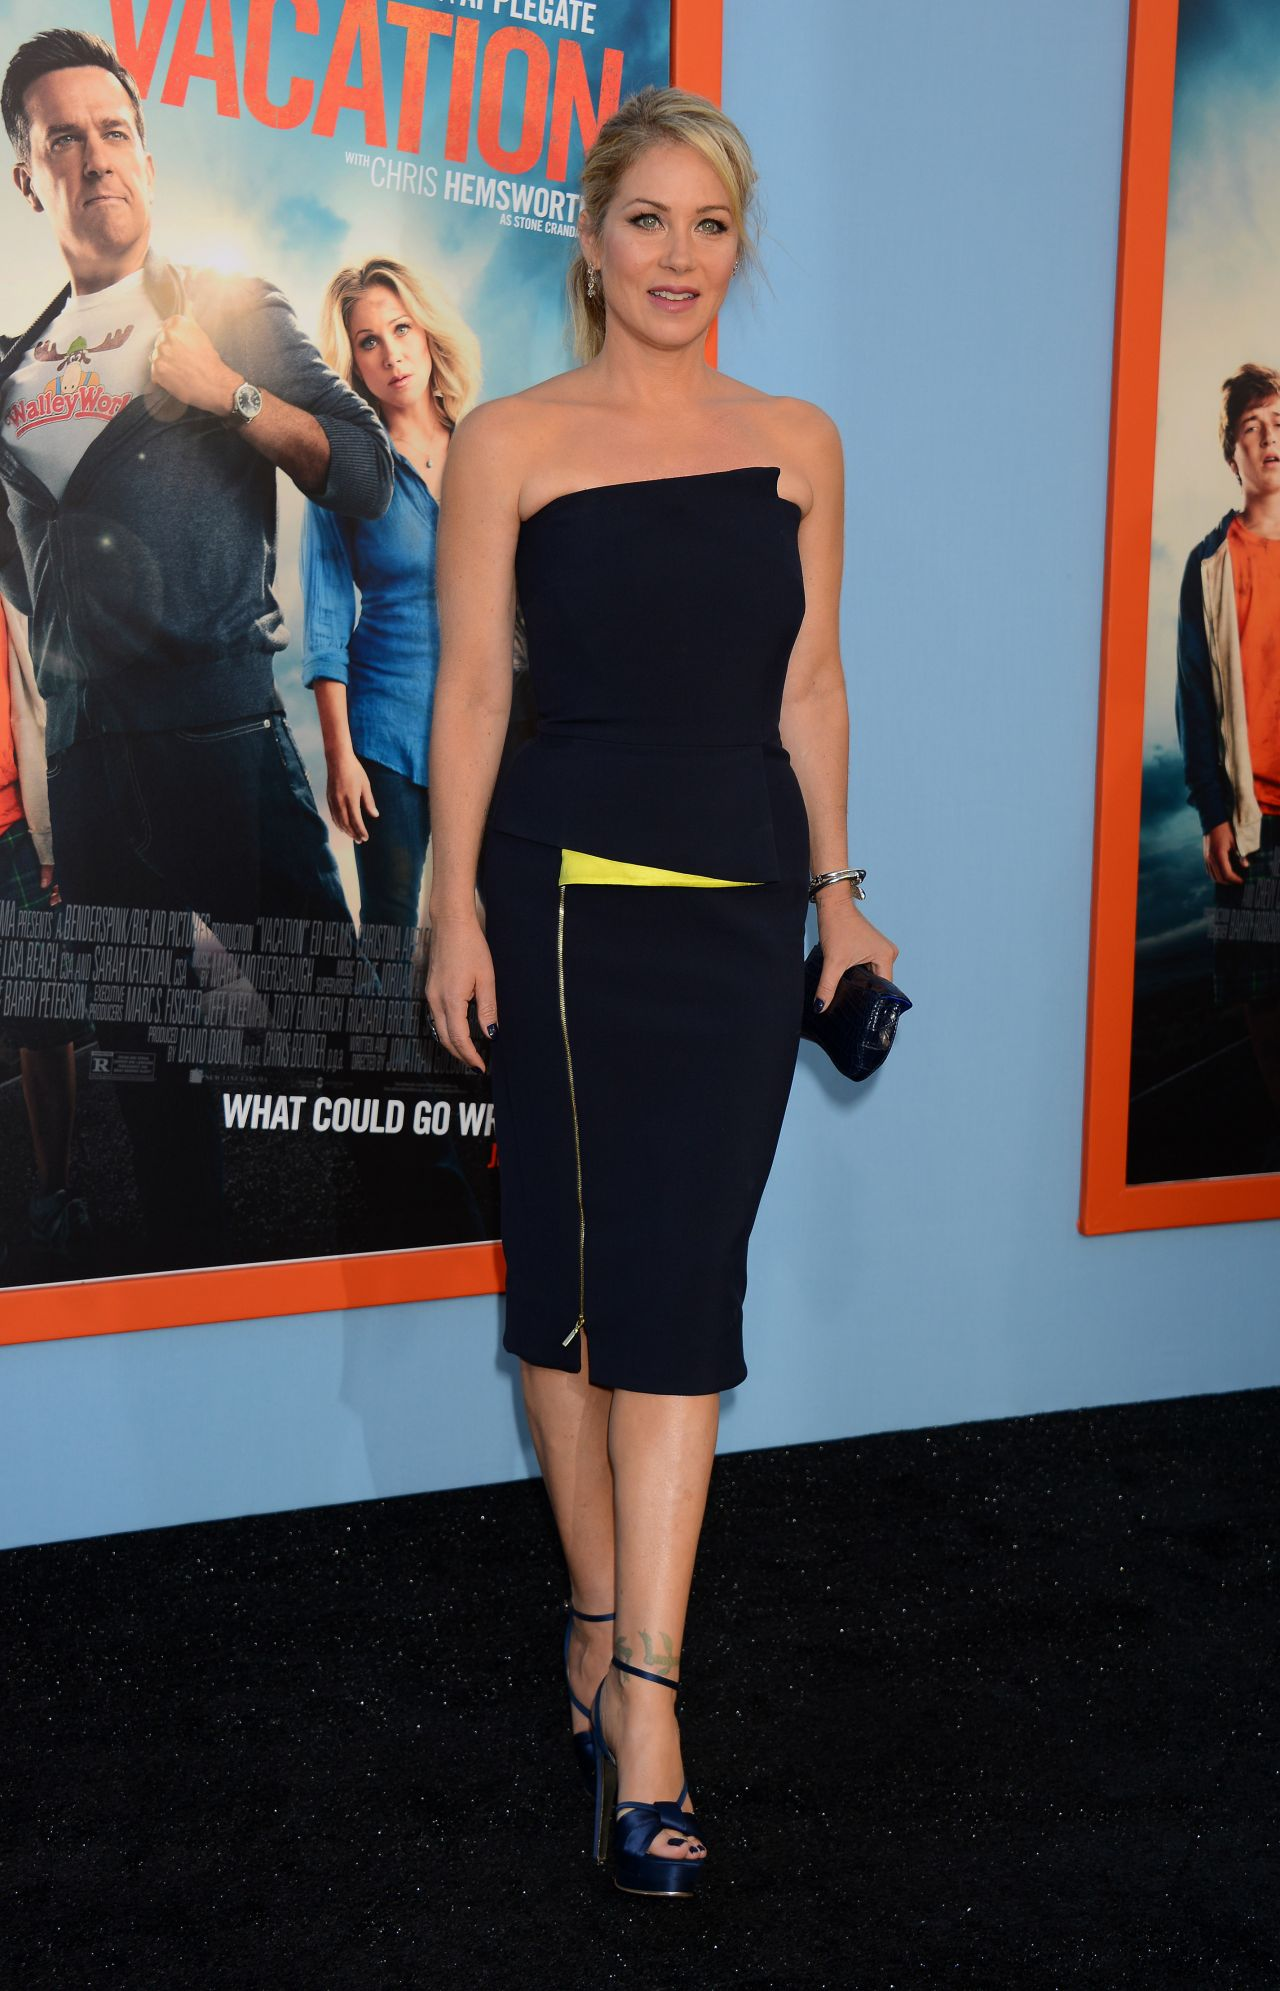 christina-applegate-in-amanda-wakeley-vacation-la-premiere